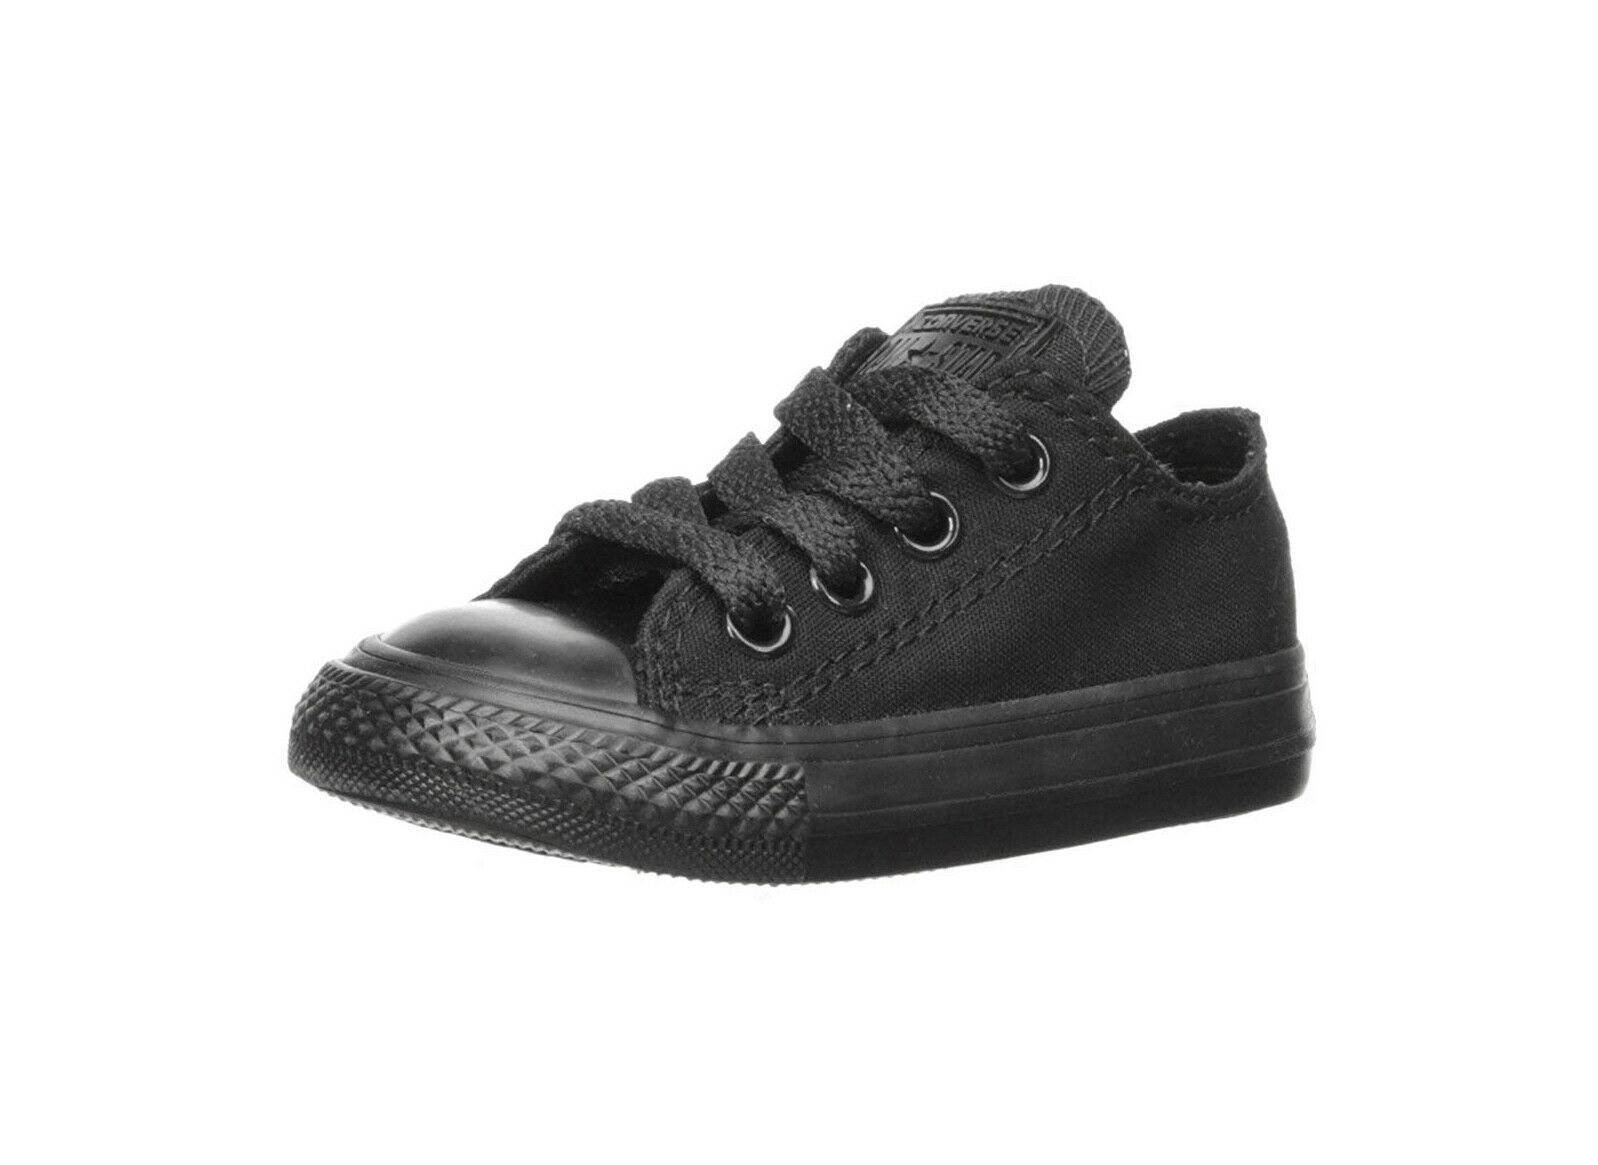 Converse All Star Low Chucks Infant Toddler All Black Canvas Girl Shoes 714786F